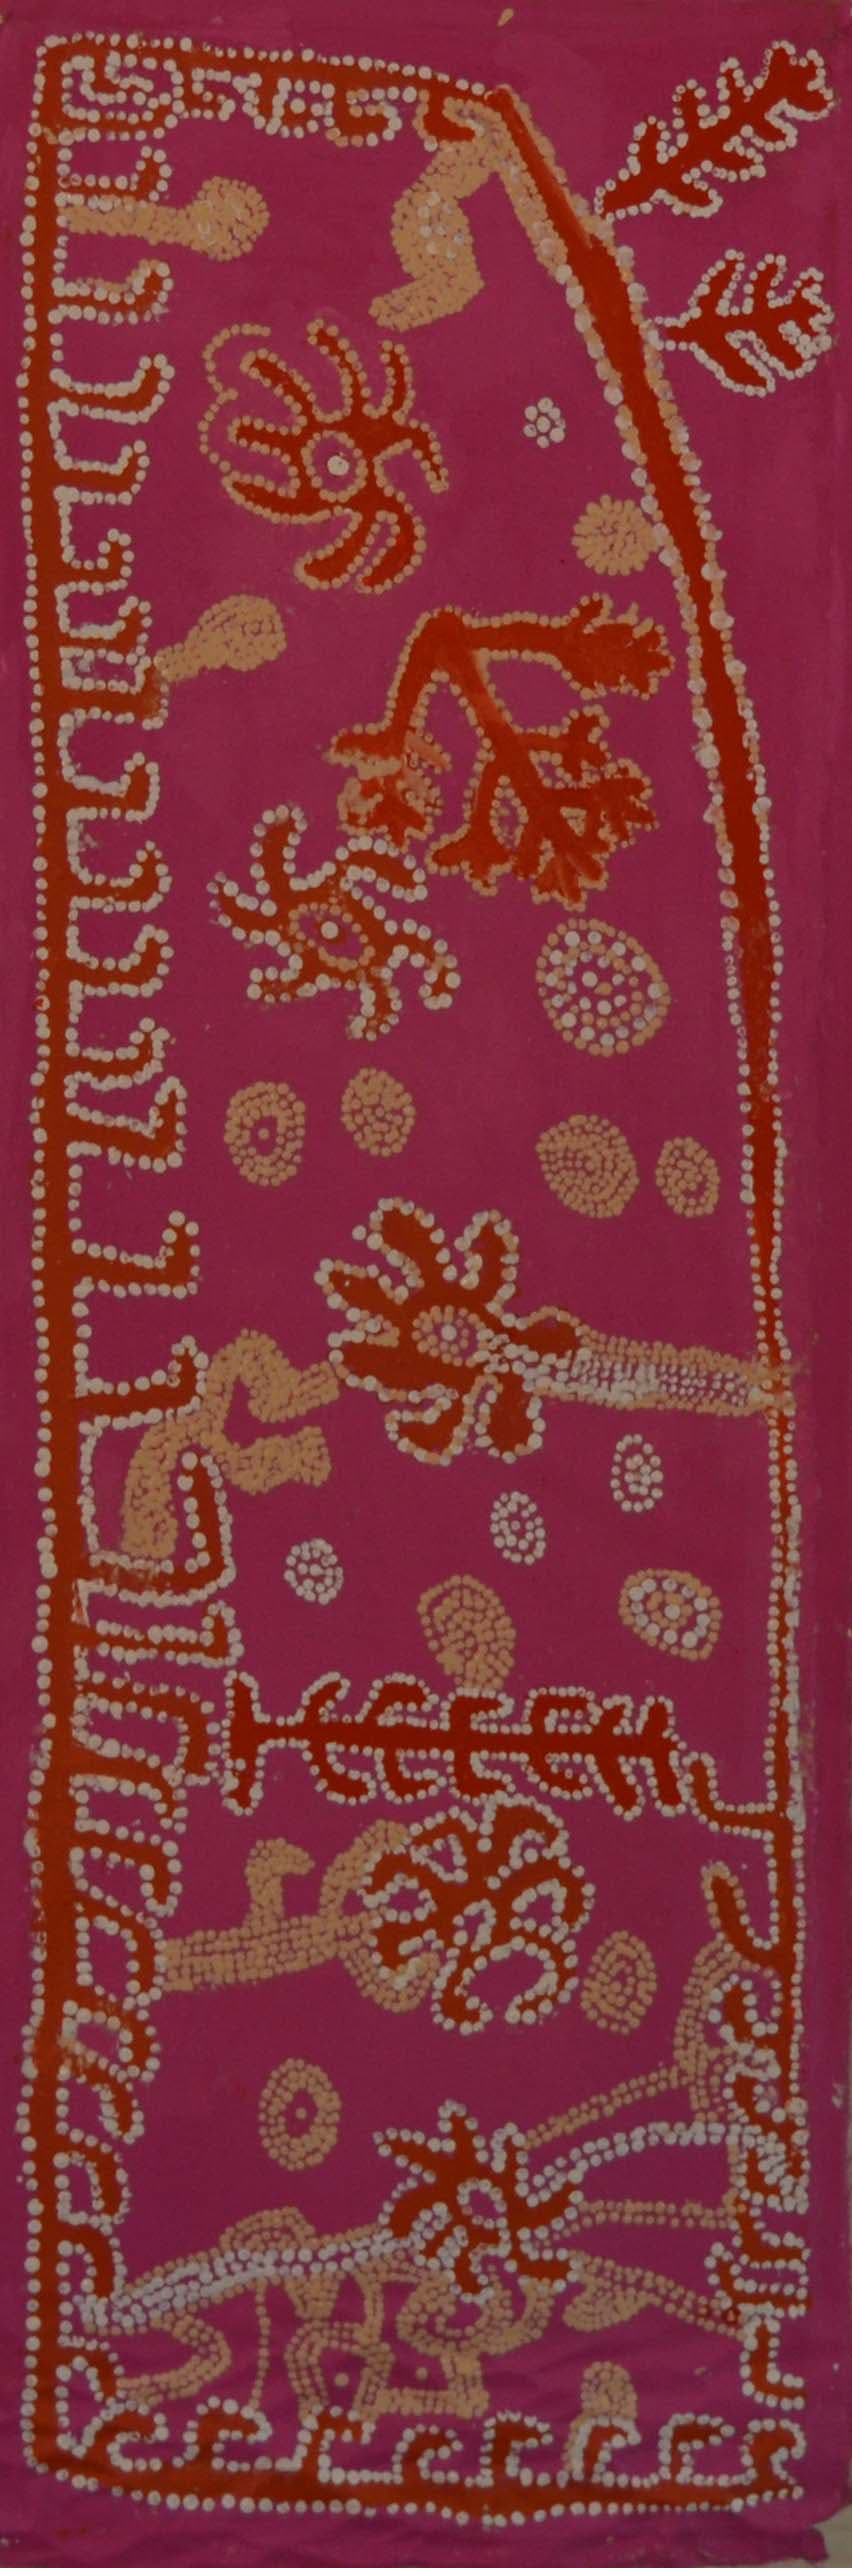 Whiskey Tjukangku Arrernte Country acrylic on canvas 121 x 40 cm